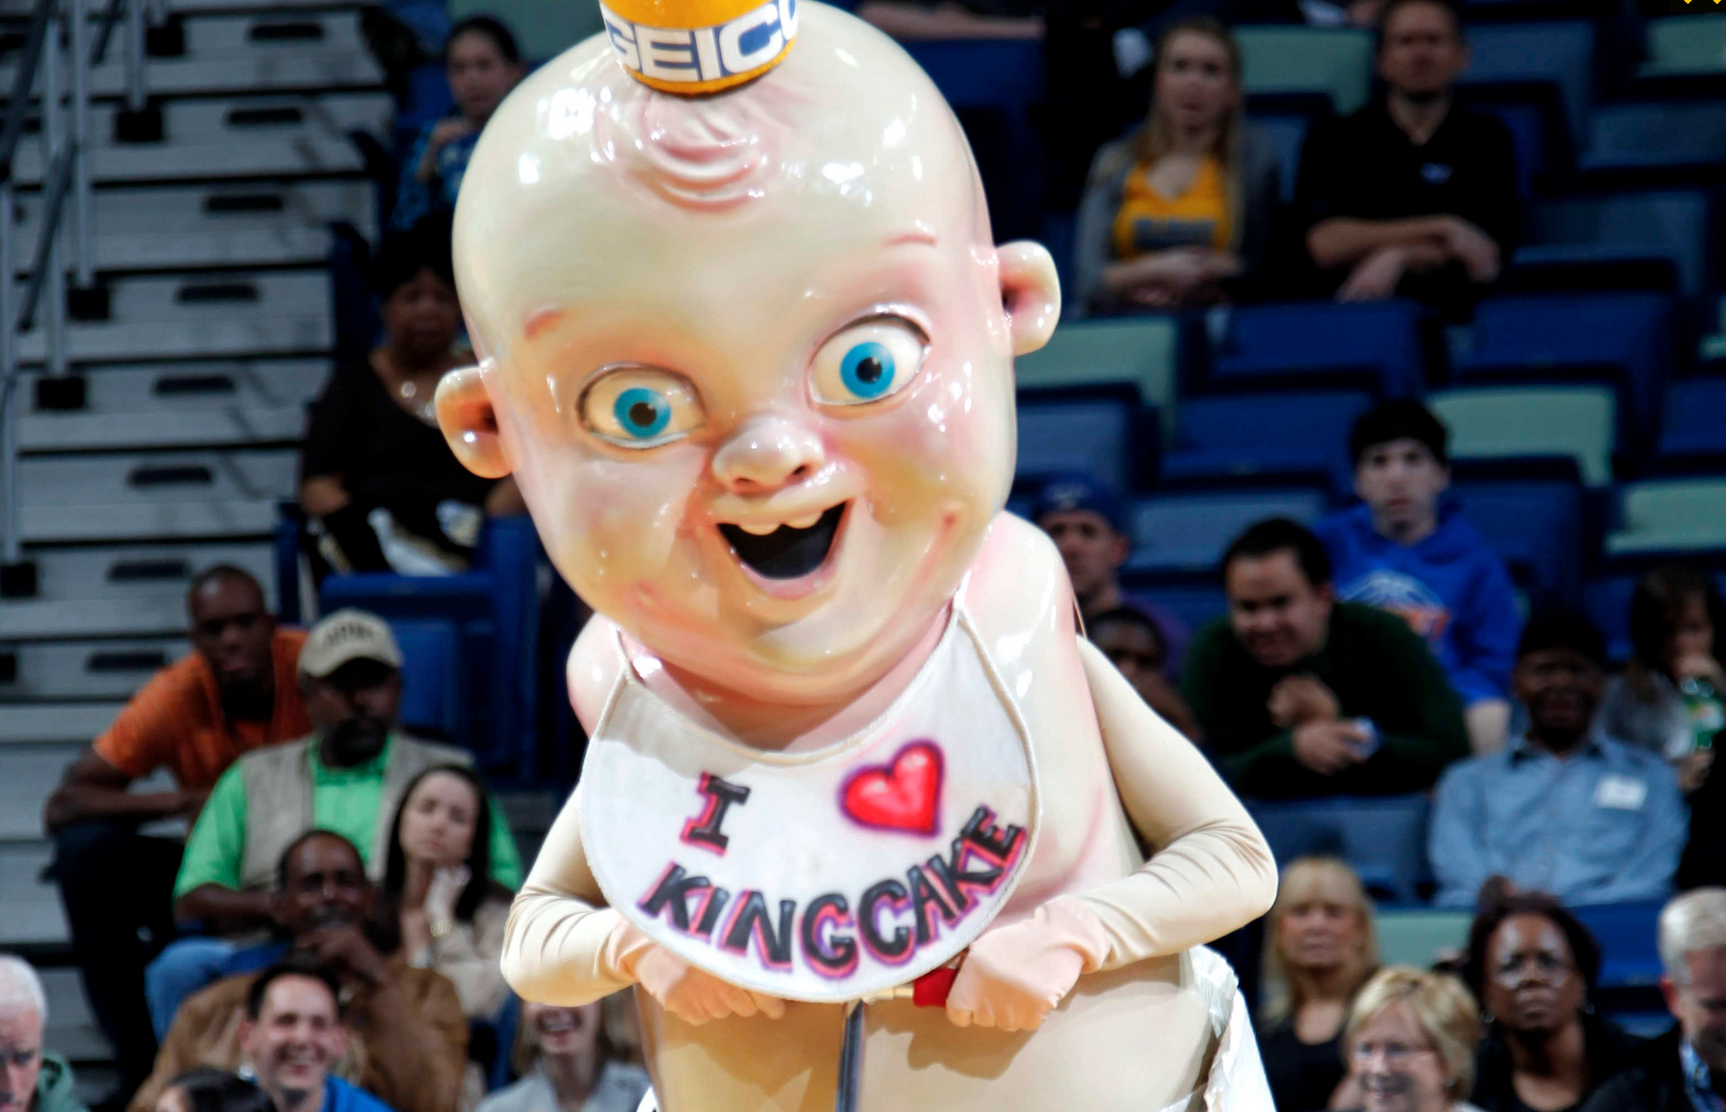 The Creepiest Mascots in Sports | By Chris Long